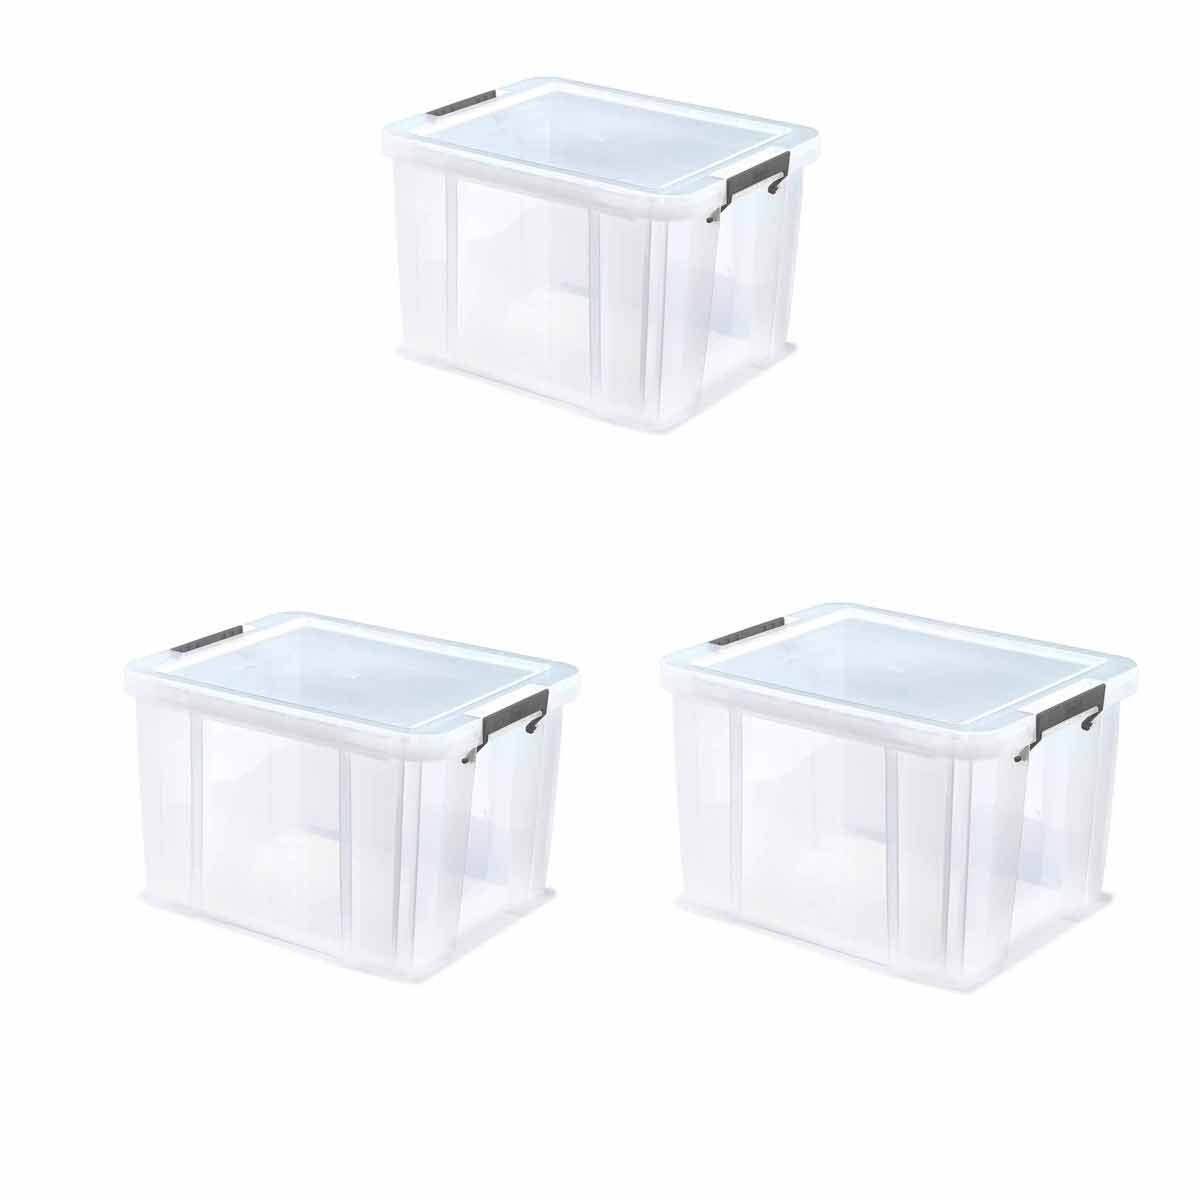 Whitefurze Allstore Plastic Storage Box 36 Litre Pack of 3